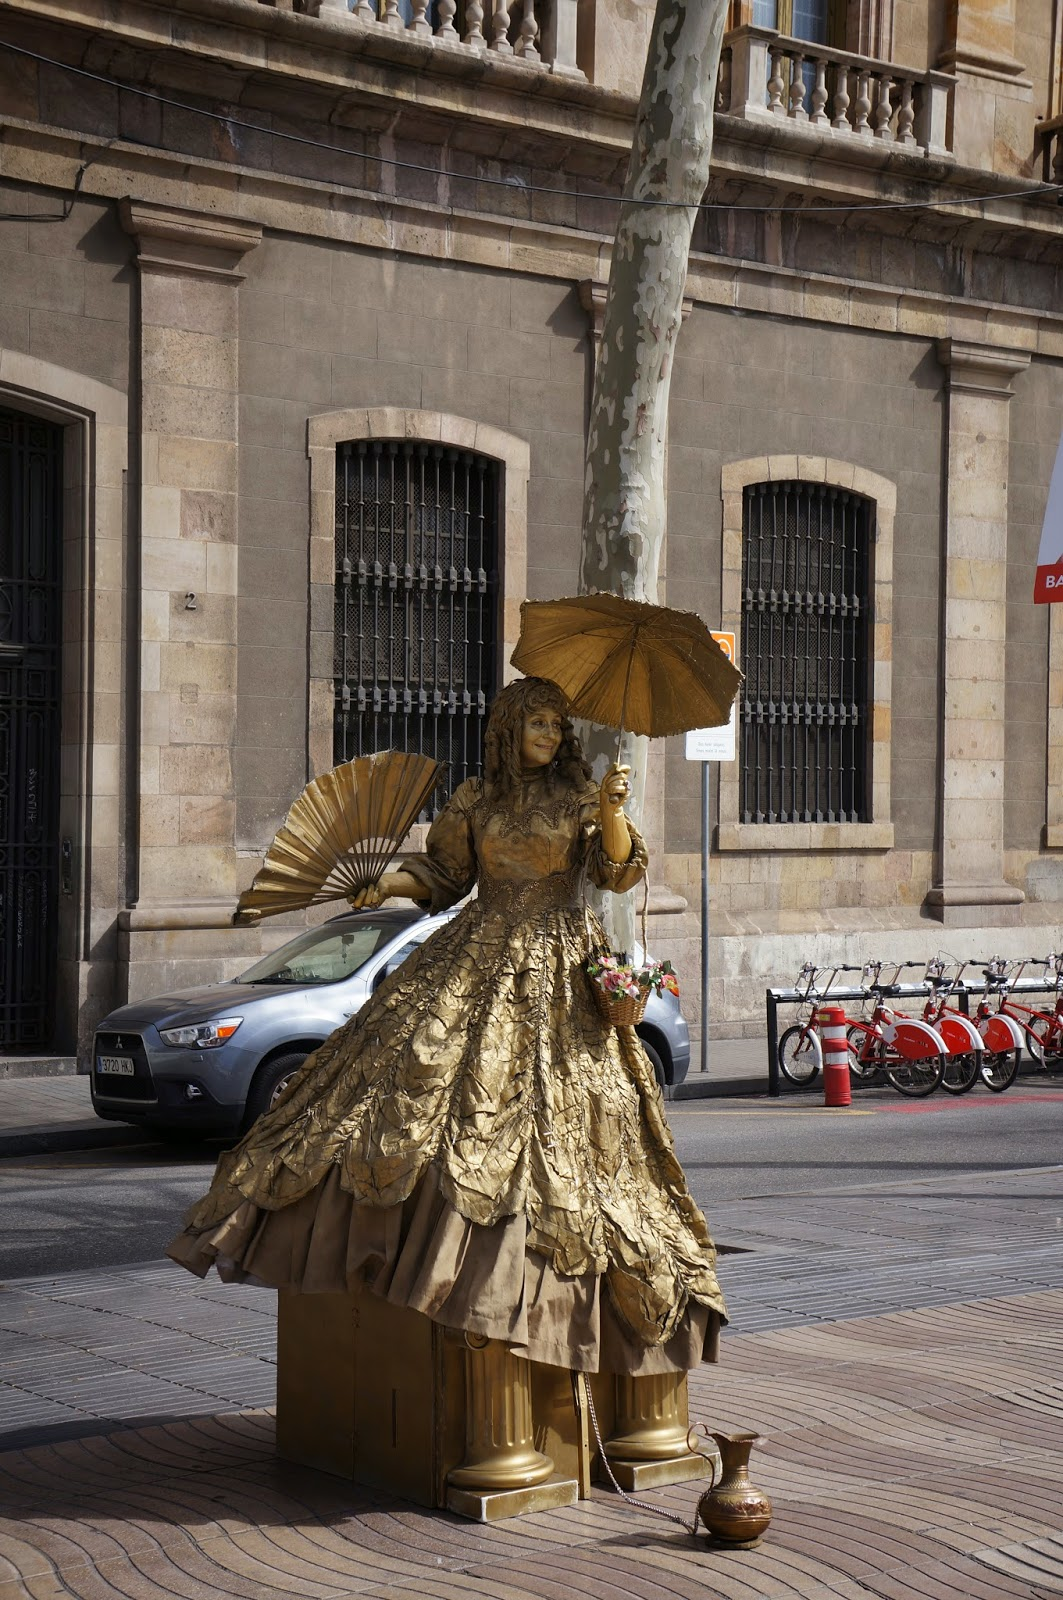 Human statue in gold, Las Ramblas district of Barcelona Spain.